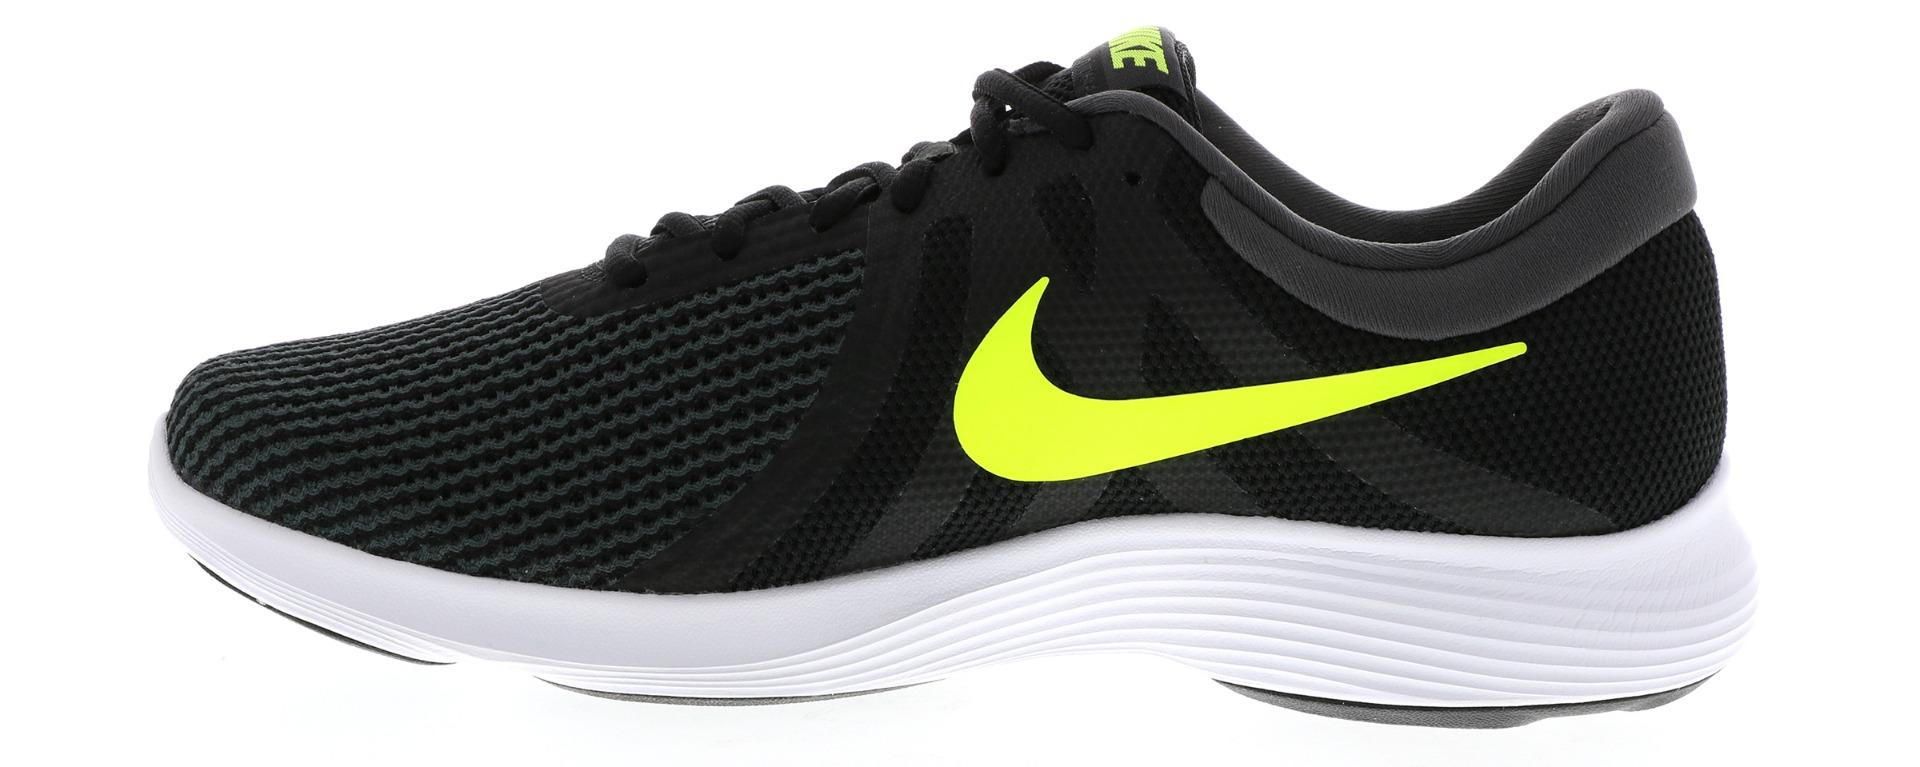 low priced 0f0a4 22439 Men's Nike Revolution 3